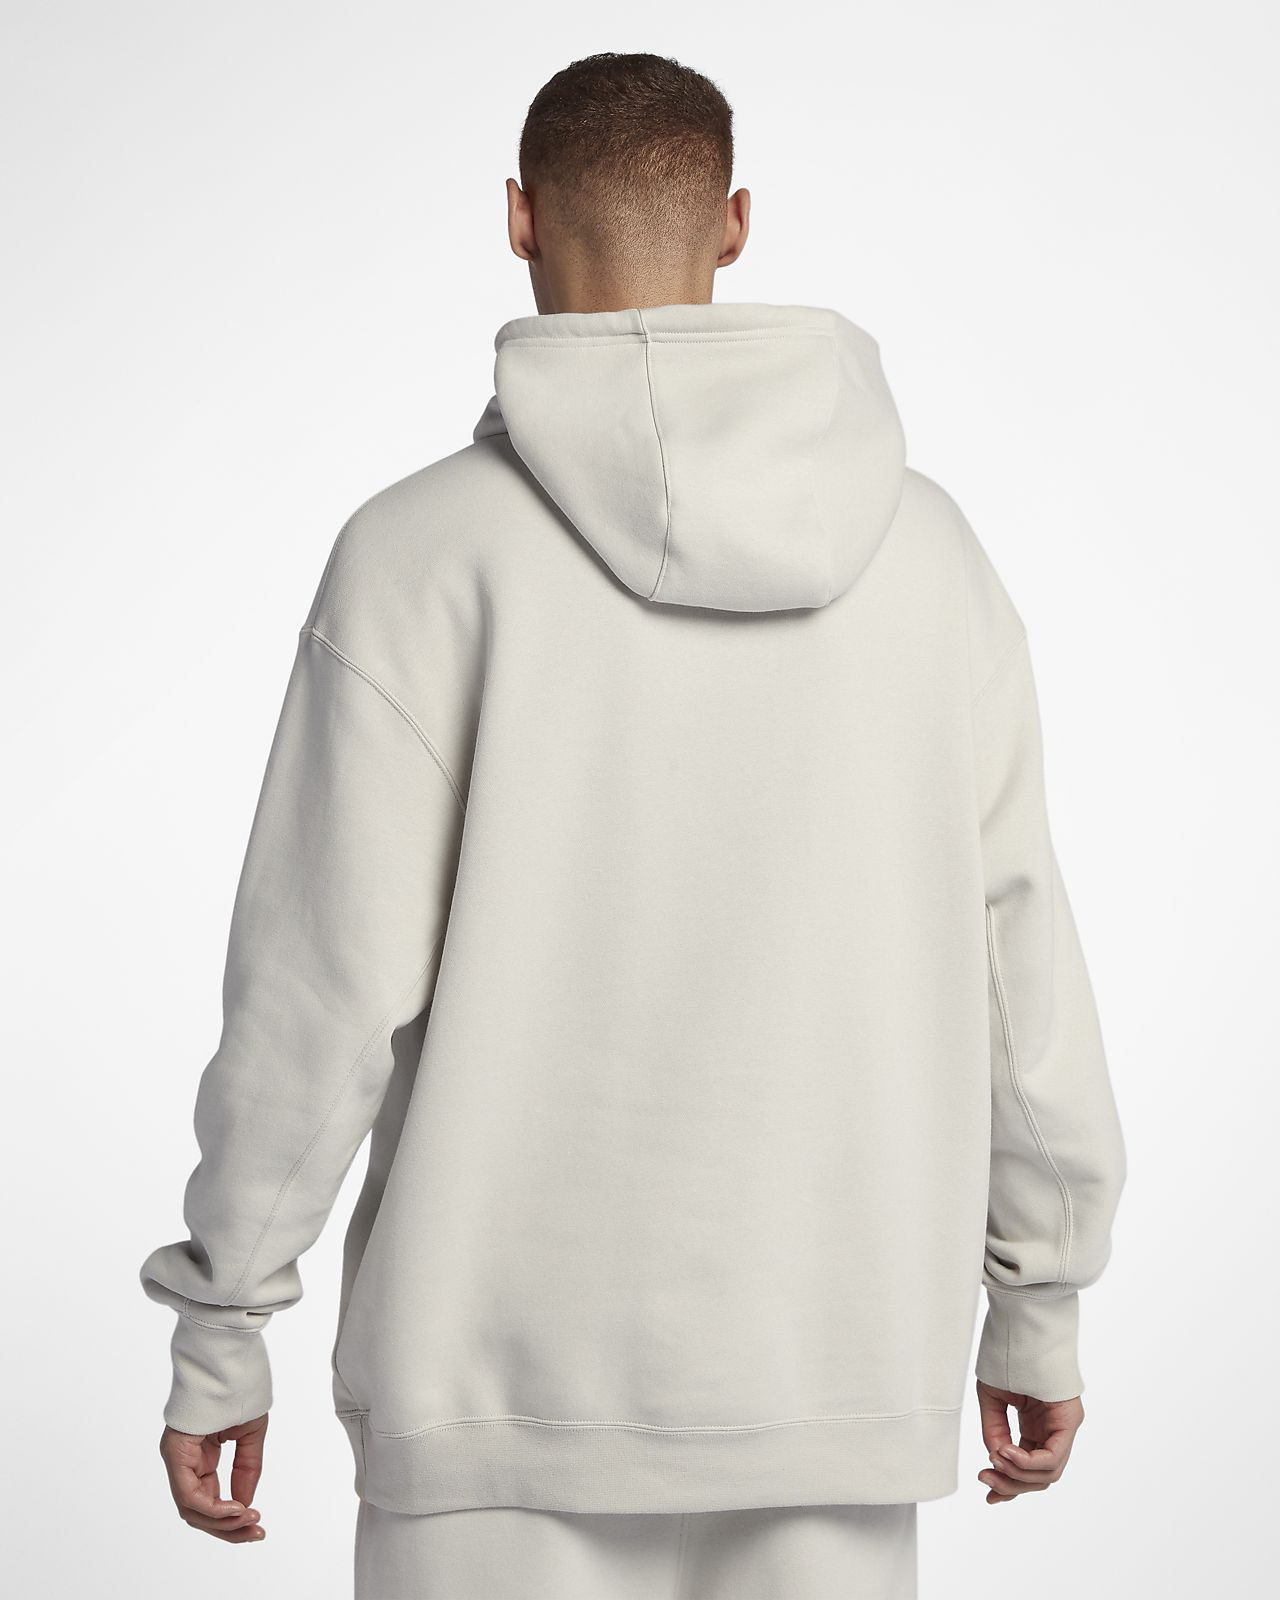 253ee549e Nike Sportswear NSW Men's Loose-Fit Fleece Hoodie. Nike.com AU